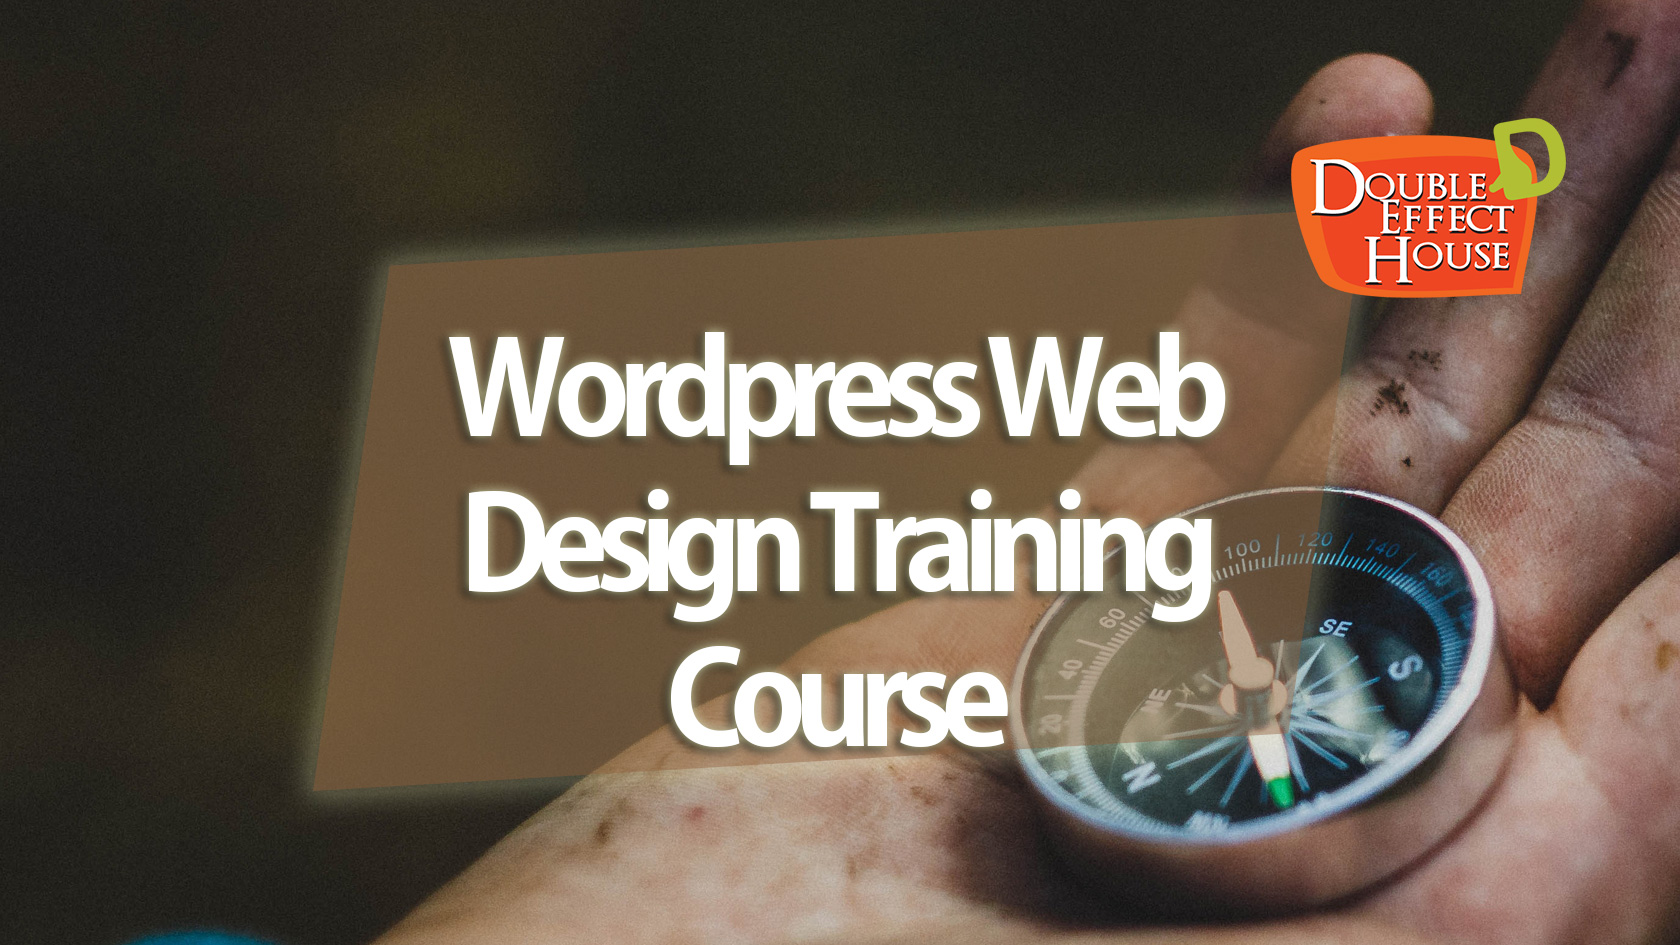 Wordpress Web Design Training Course